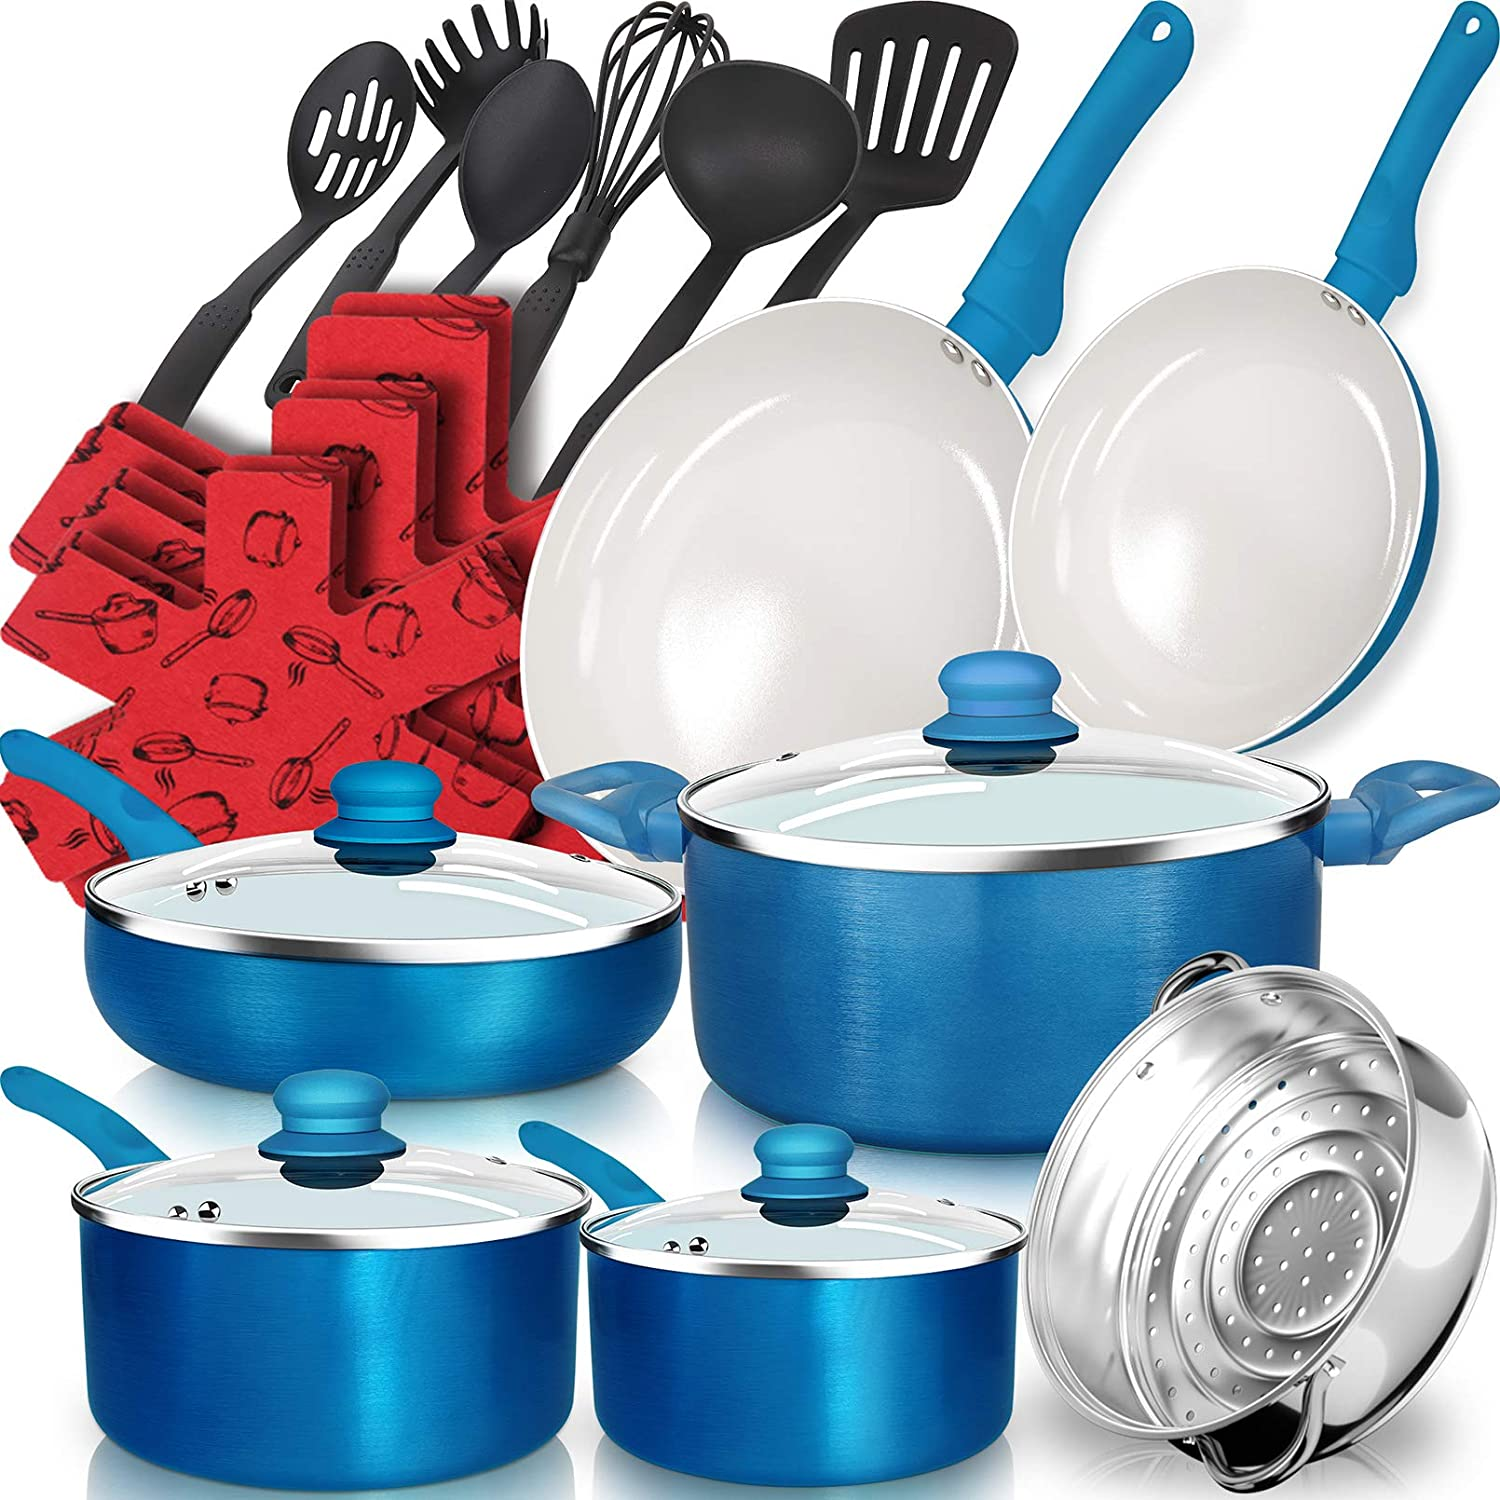 Dealz Frenzy 23-Piece Soft Grip Absolutely Healthy Ceramic Non-Stick Cookware Set with Stay Cool Silicone Handle,Dishwasher Safe,Oven Safe, Pots and Pans Set,Scratch Resistance,Ocean Blue,Easter Gift!